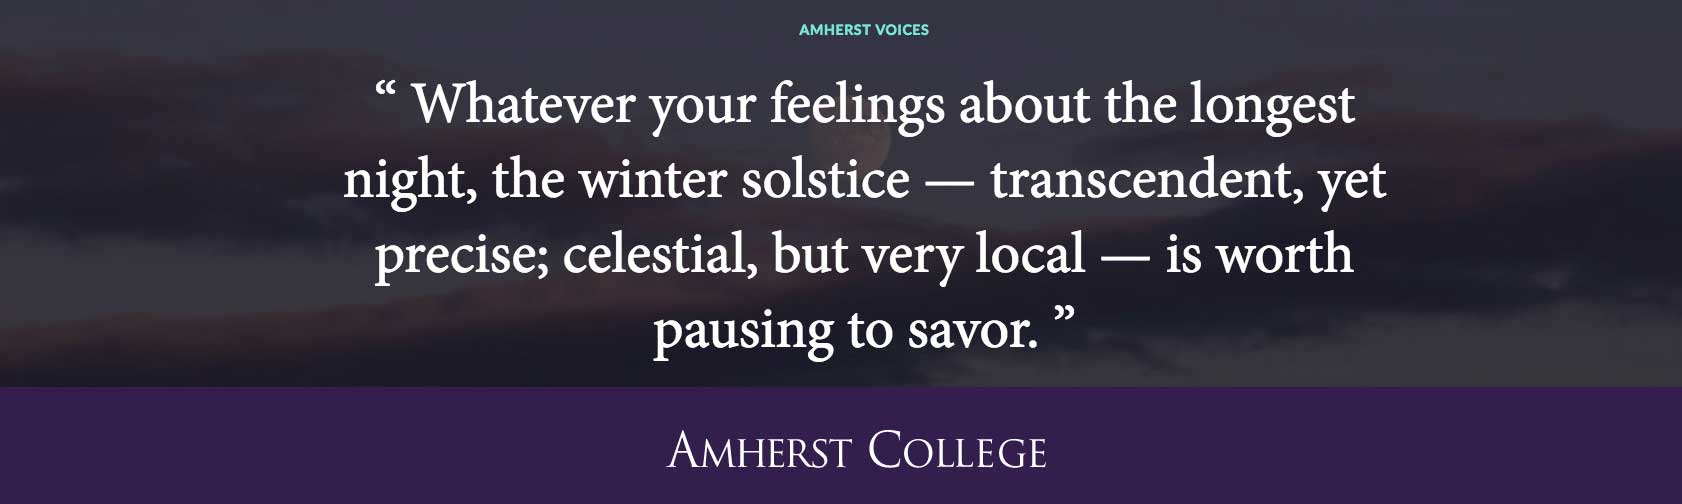 today voices college quote by mark vanhoenacker 96 in praise of darkness ""